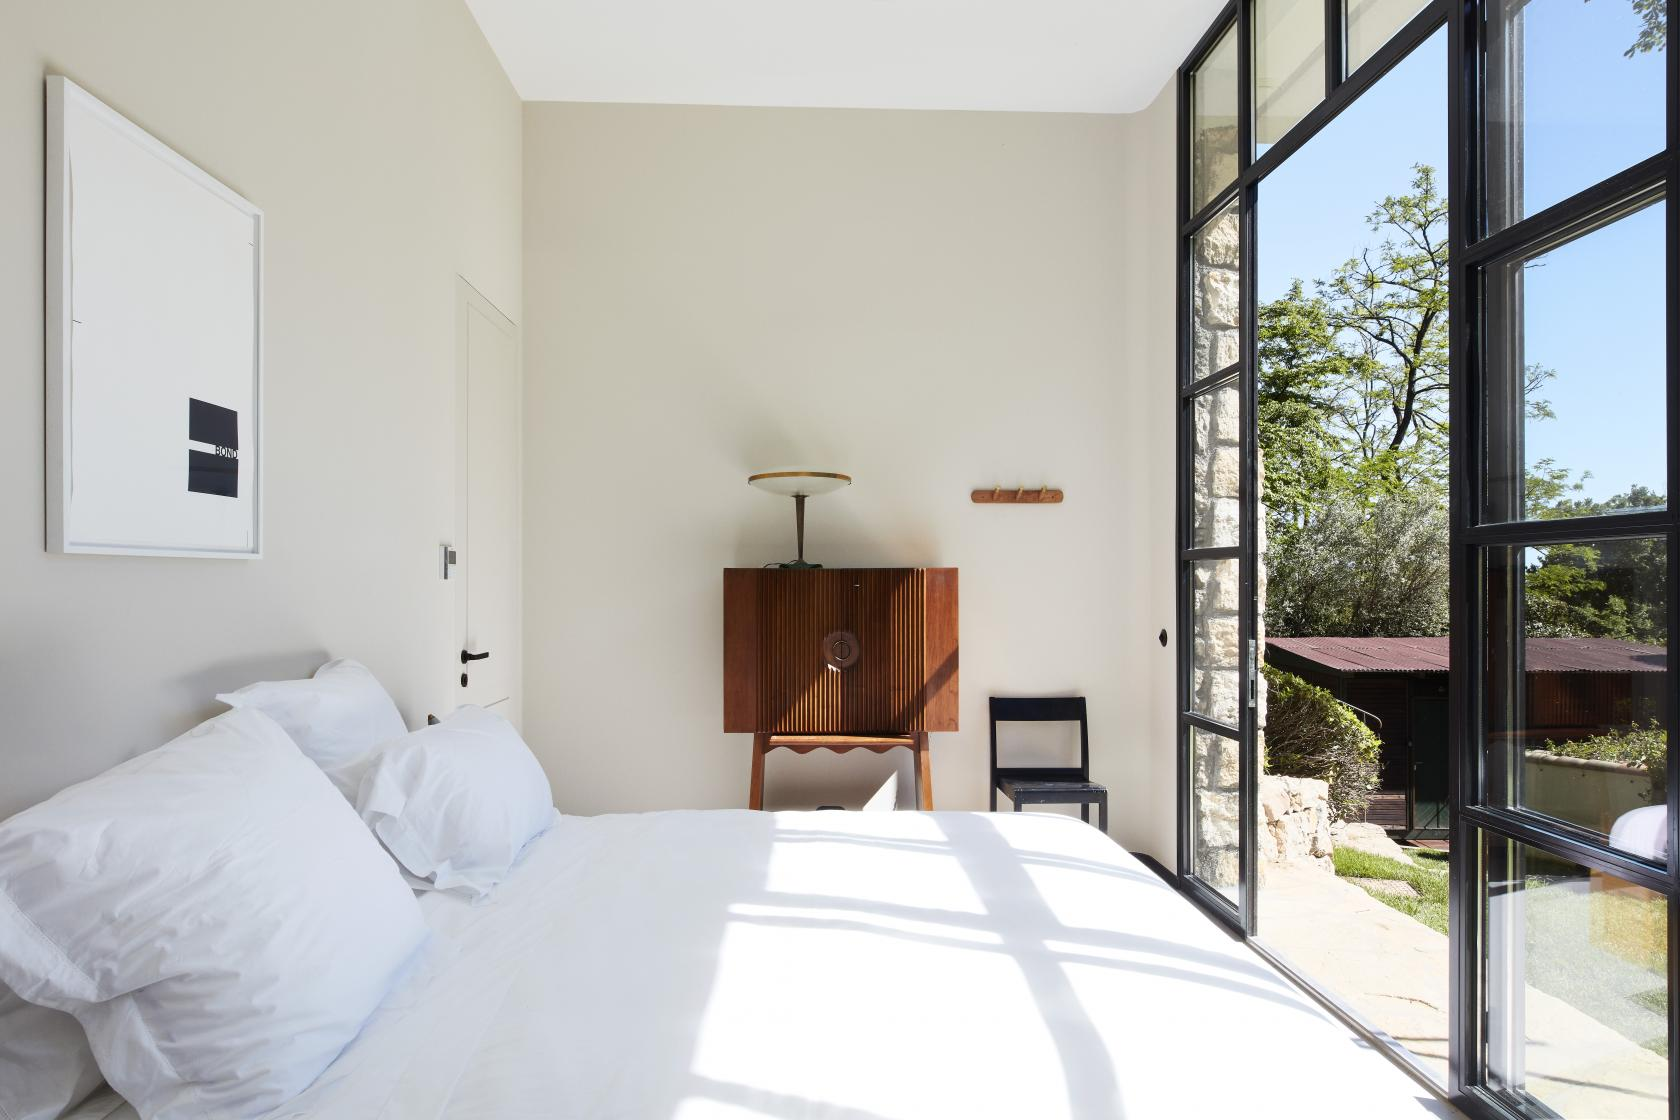 Rooms at the gallery-cum-hotel start from €250 per night